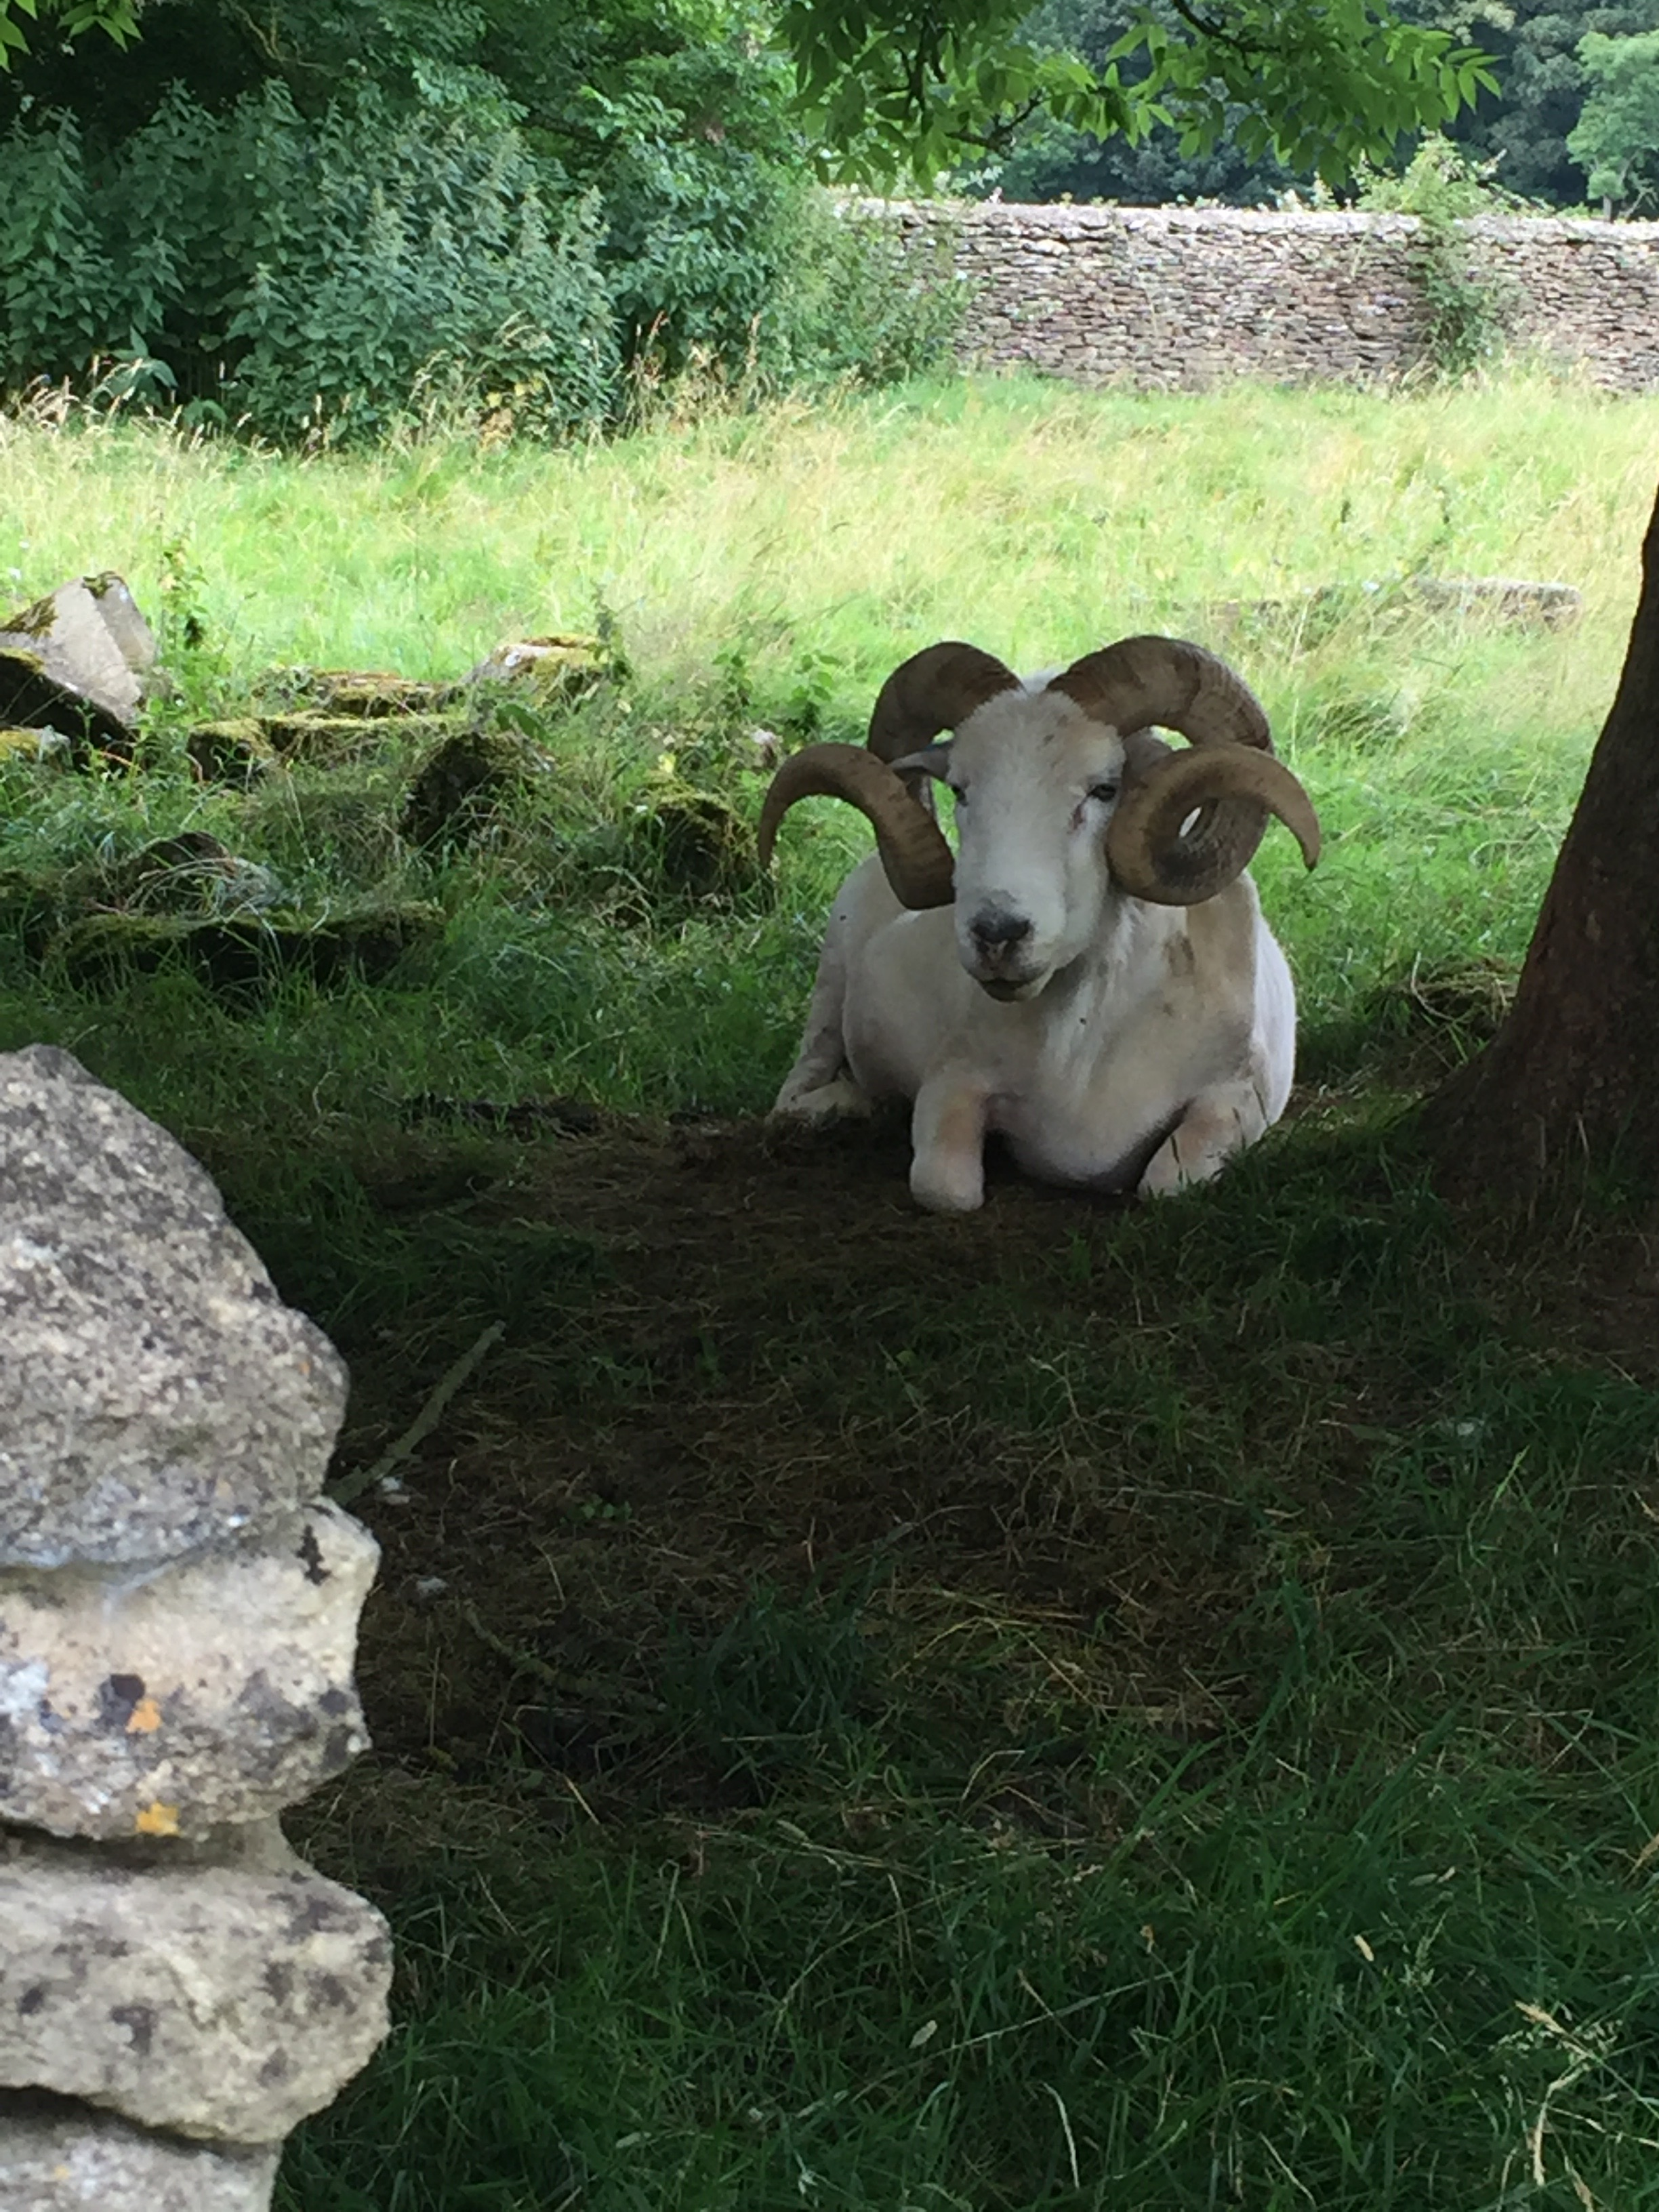 One of Phoebe's new friends, one of the three rams on the property.